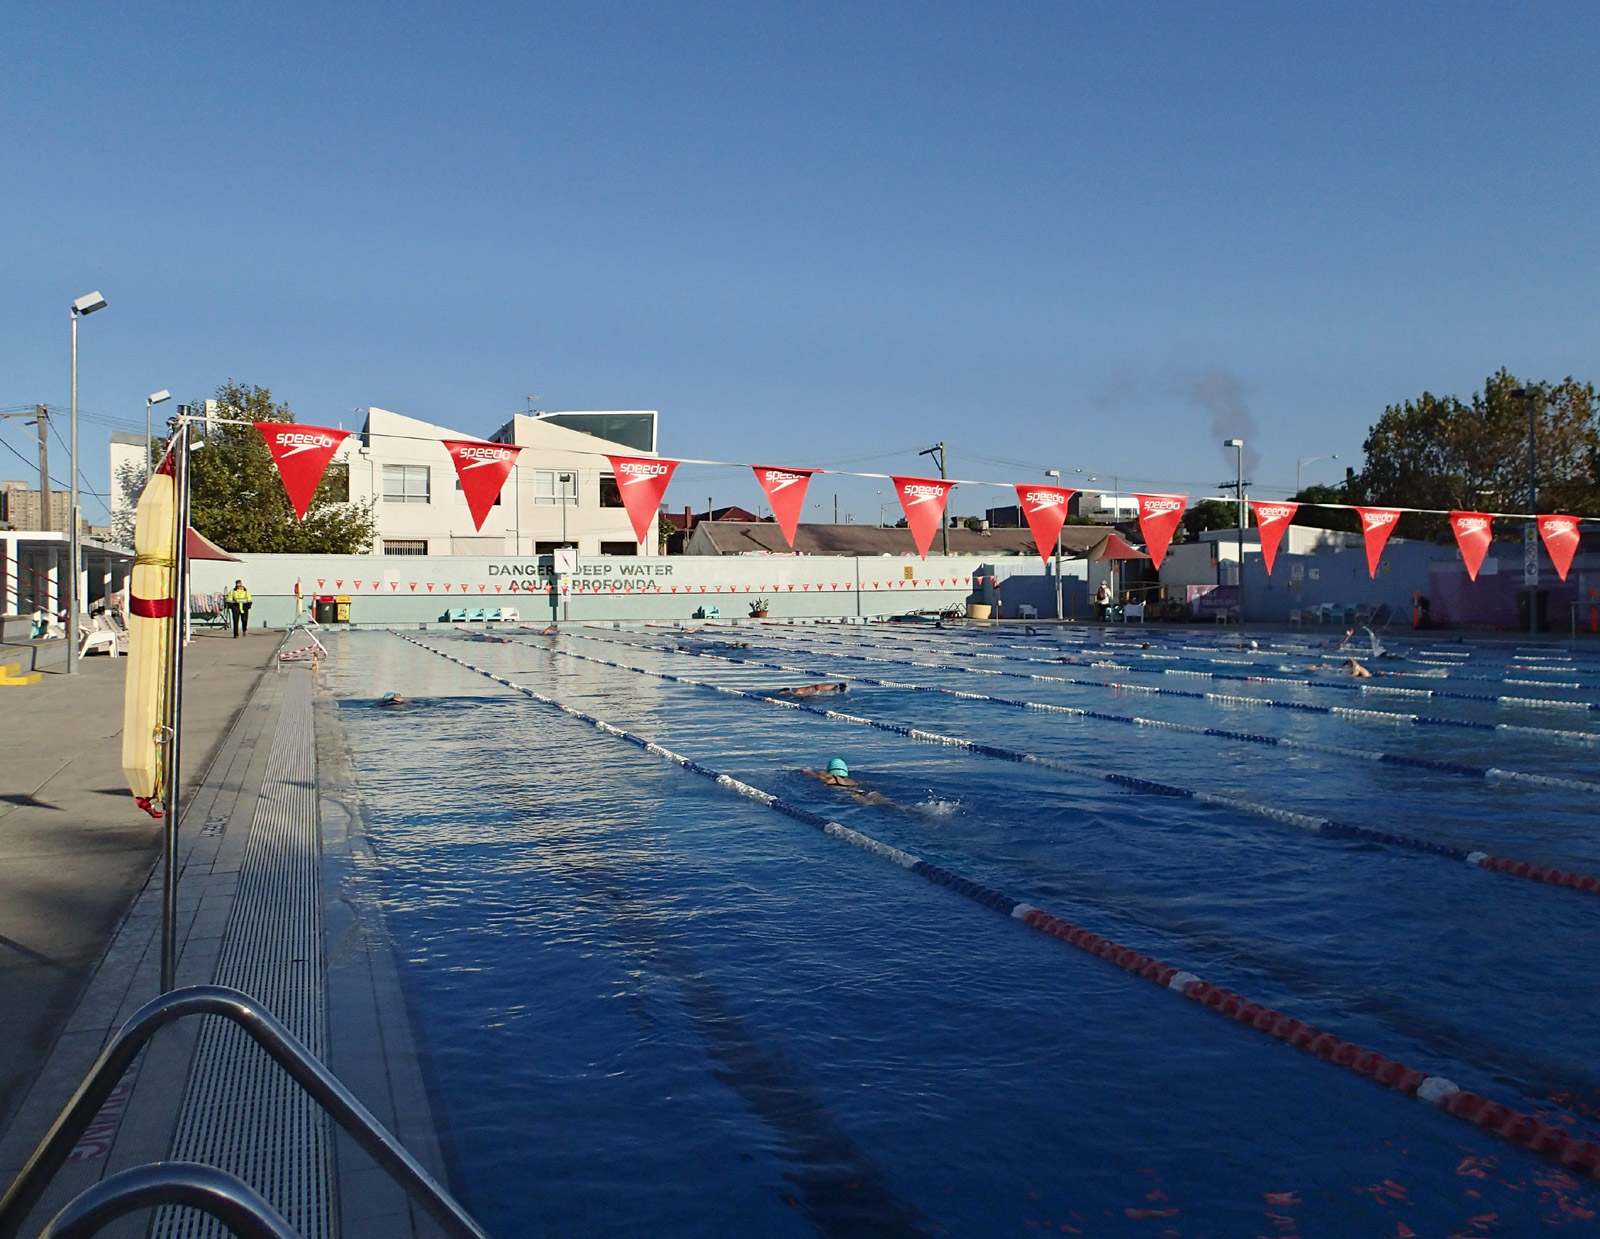 Outdoor swimming pool, with swimmers